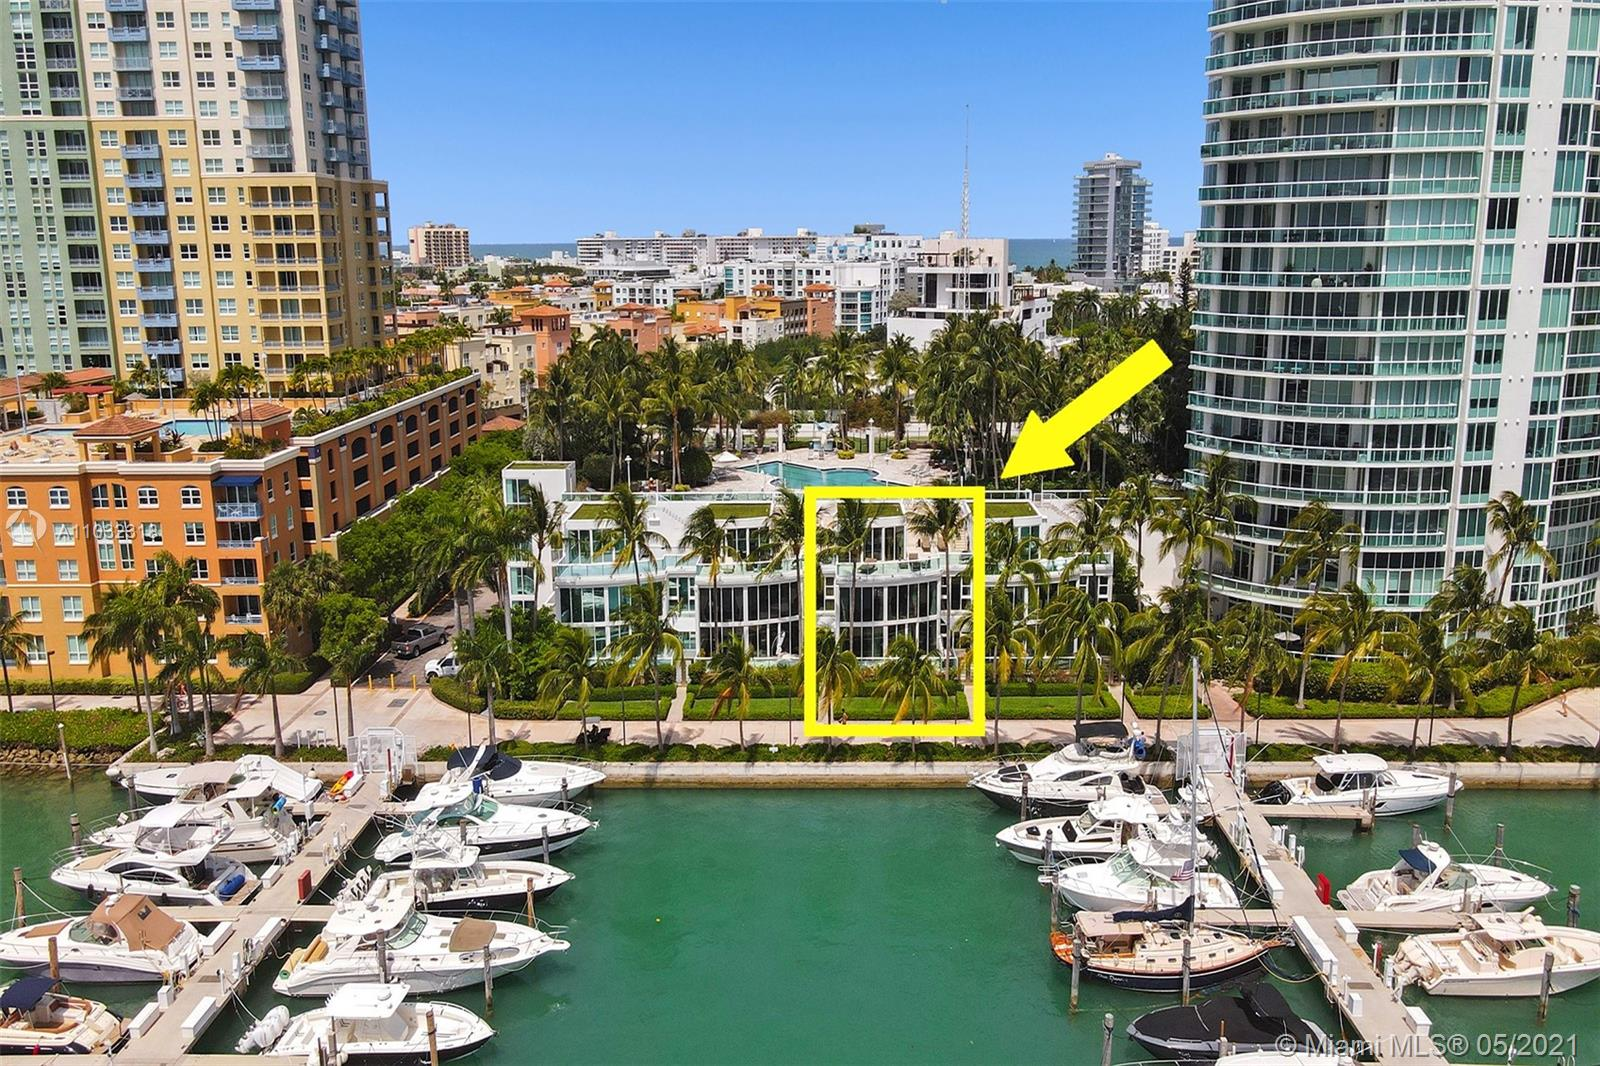 Old World Elegance! Largest, Waterfront Townhouse in prestigious South of Fifth located in South Beach. This waterfront TH is a rare jewel reminiscent of Italian Versace style grandeur. Feels like living in a villa in the South of France w/ the benefits of a luxury condo. A boater's dream! Dock your yacht steps away! Best positioned TH allowing for unobstructed views of mega yachts, bay, Miami skyline, & Fisher Island. Artisans & Craftsmen created a work of art w/ highest quality finishes incl. Hand Carved Marble from Rome, Italy, luxurious open kitchen, ONYX baths, grand private master suite w/ tons of closets. Over $1 Million spent! 3,386SF per owner, Gated double door entry, huge private terraces, Multi-level, High ceilings, direct access to the Murano at Portofino 5-Star Amenities.